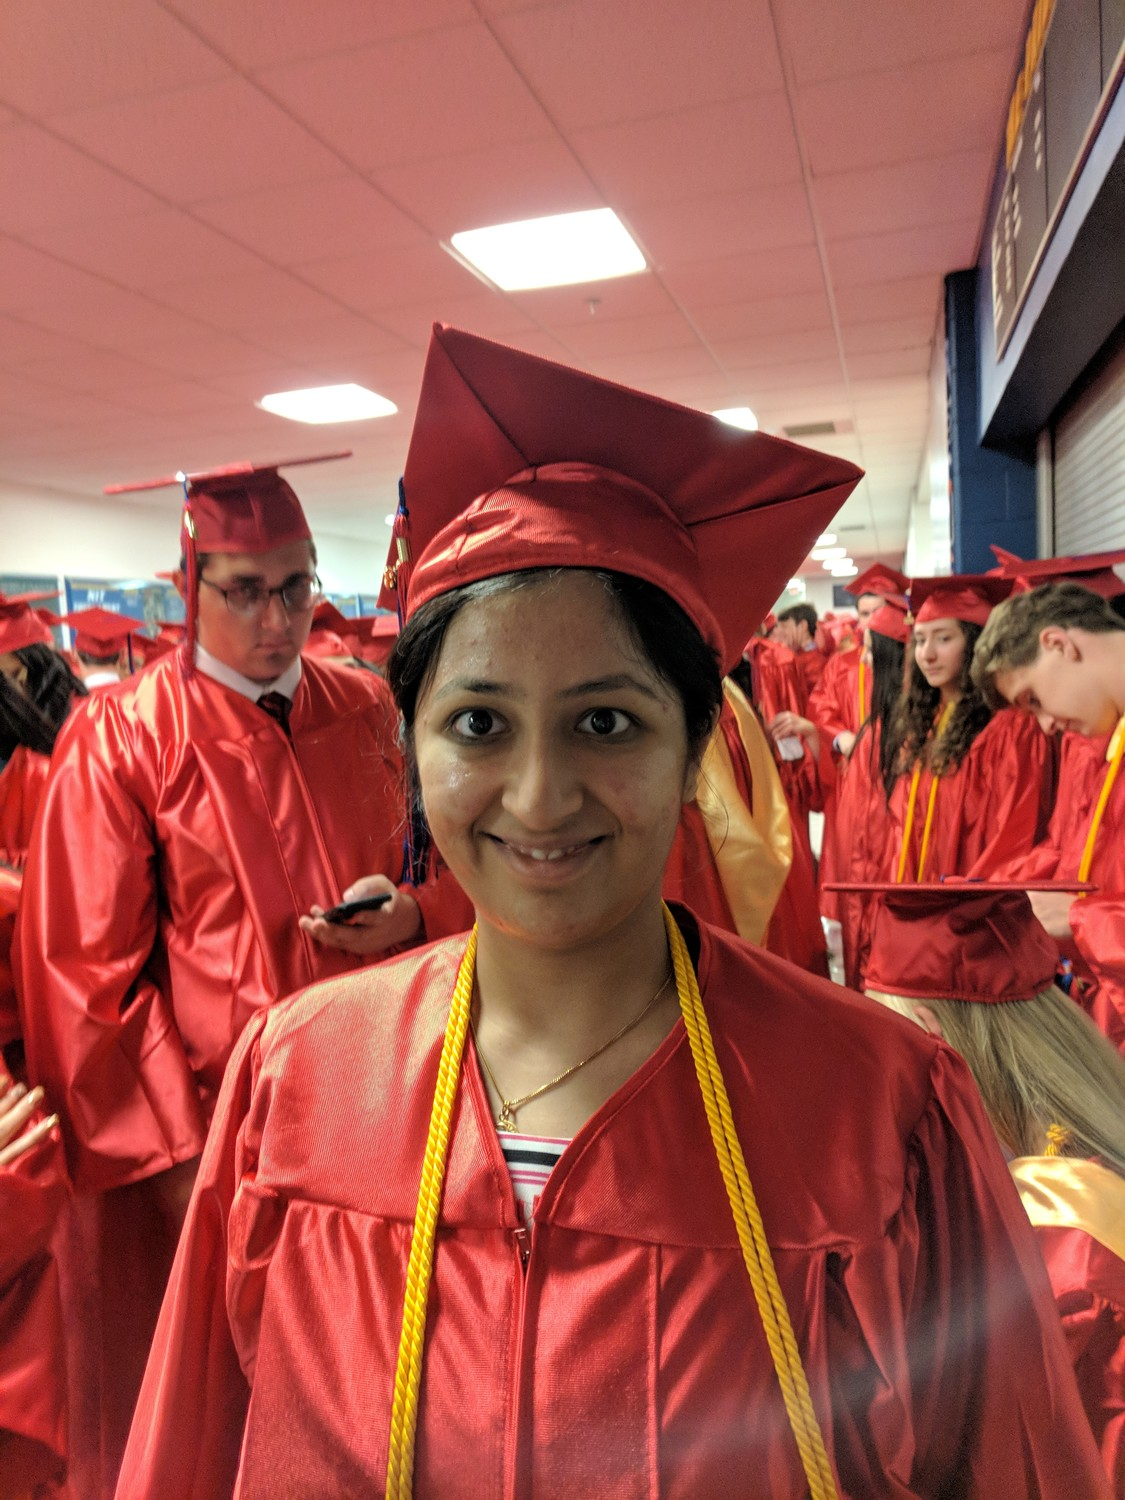 """Whenever I look at my red cap and gown, it will be a great symbol of nostalgia,"" Simran Sood said."